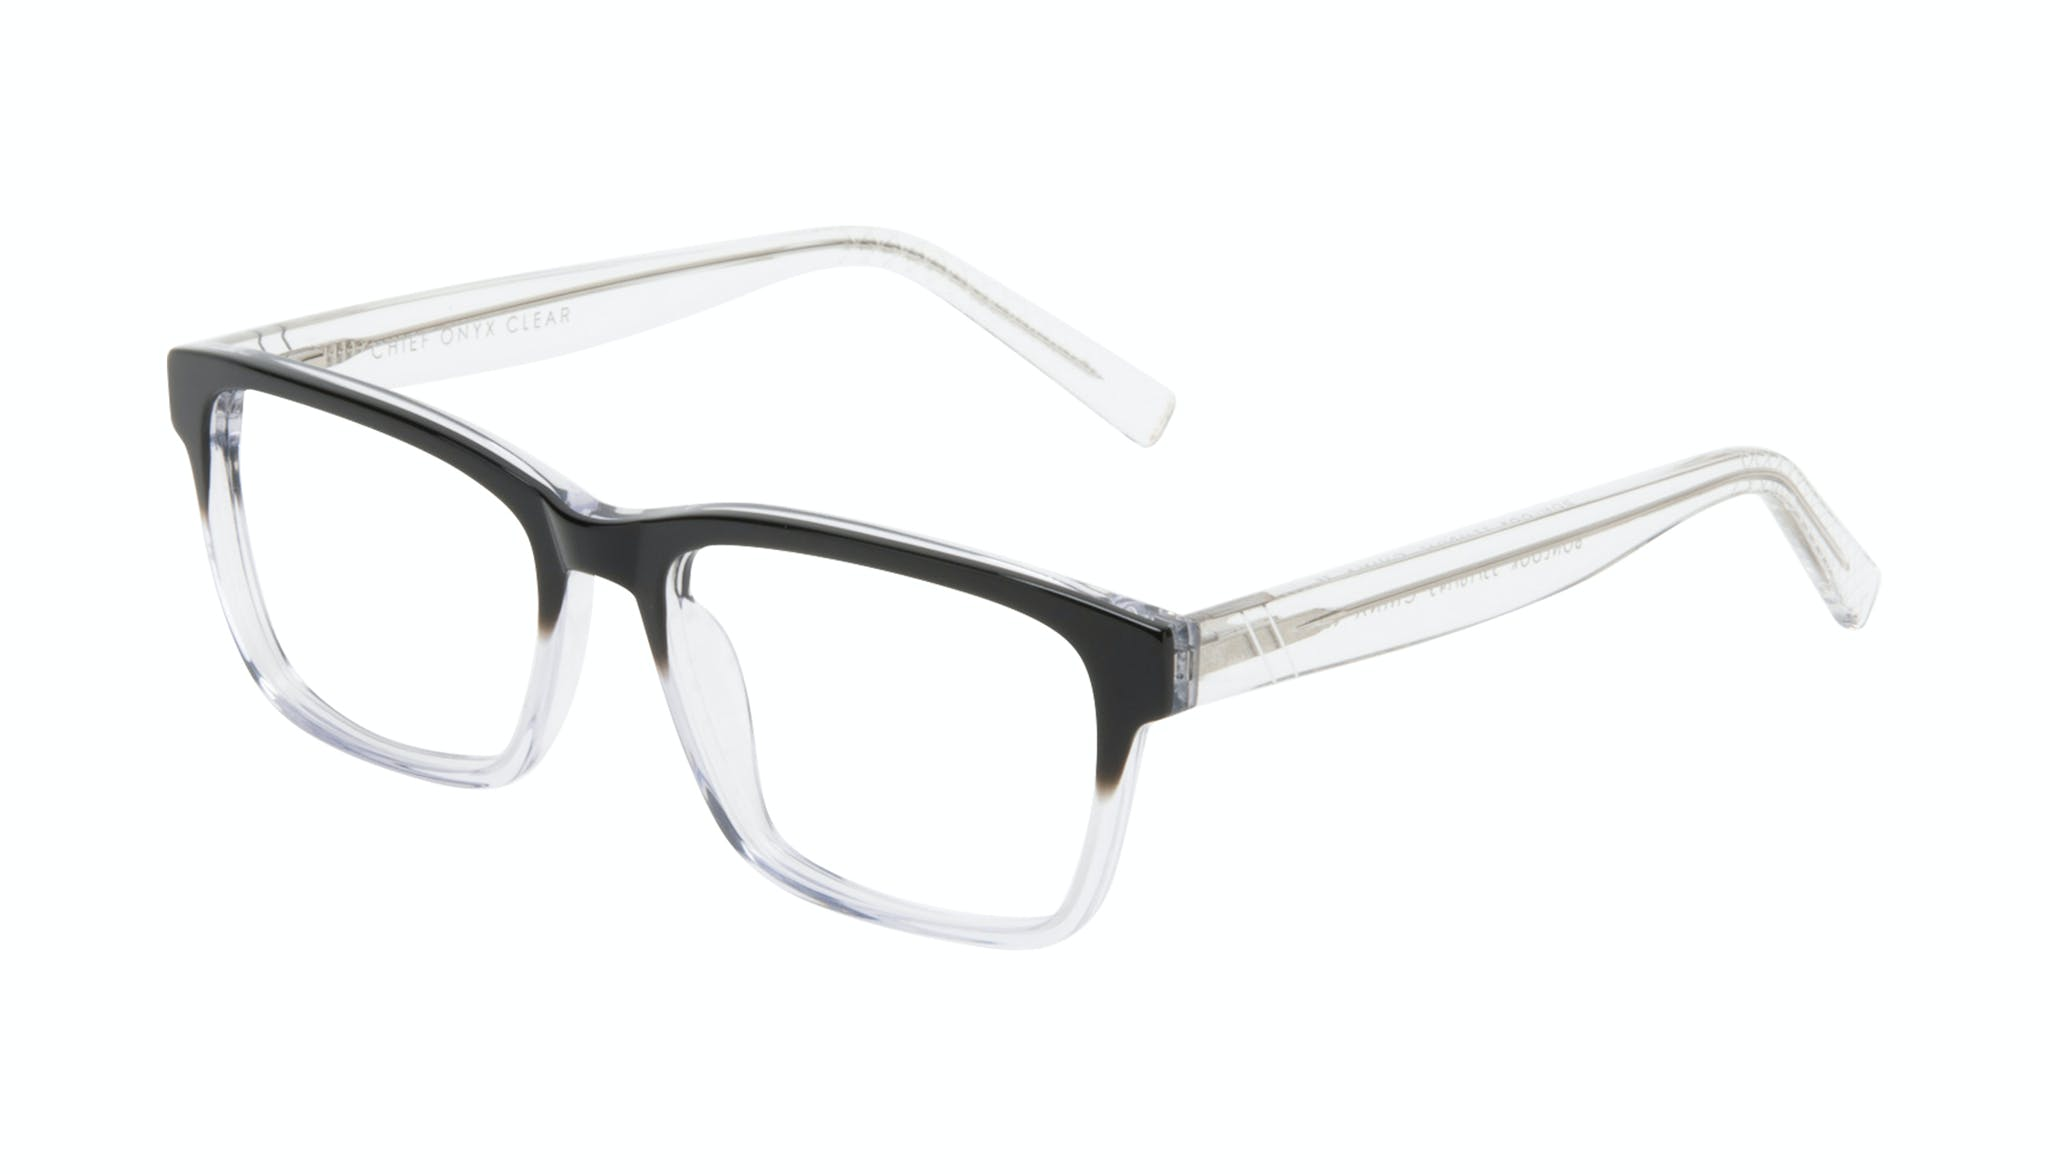 Affordable Fashion Glasses Square Eyeglasses Men Chief Onyx Clear Tilt